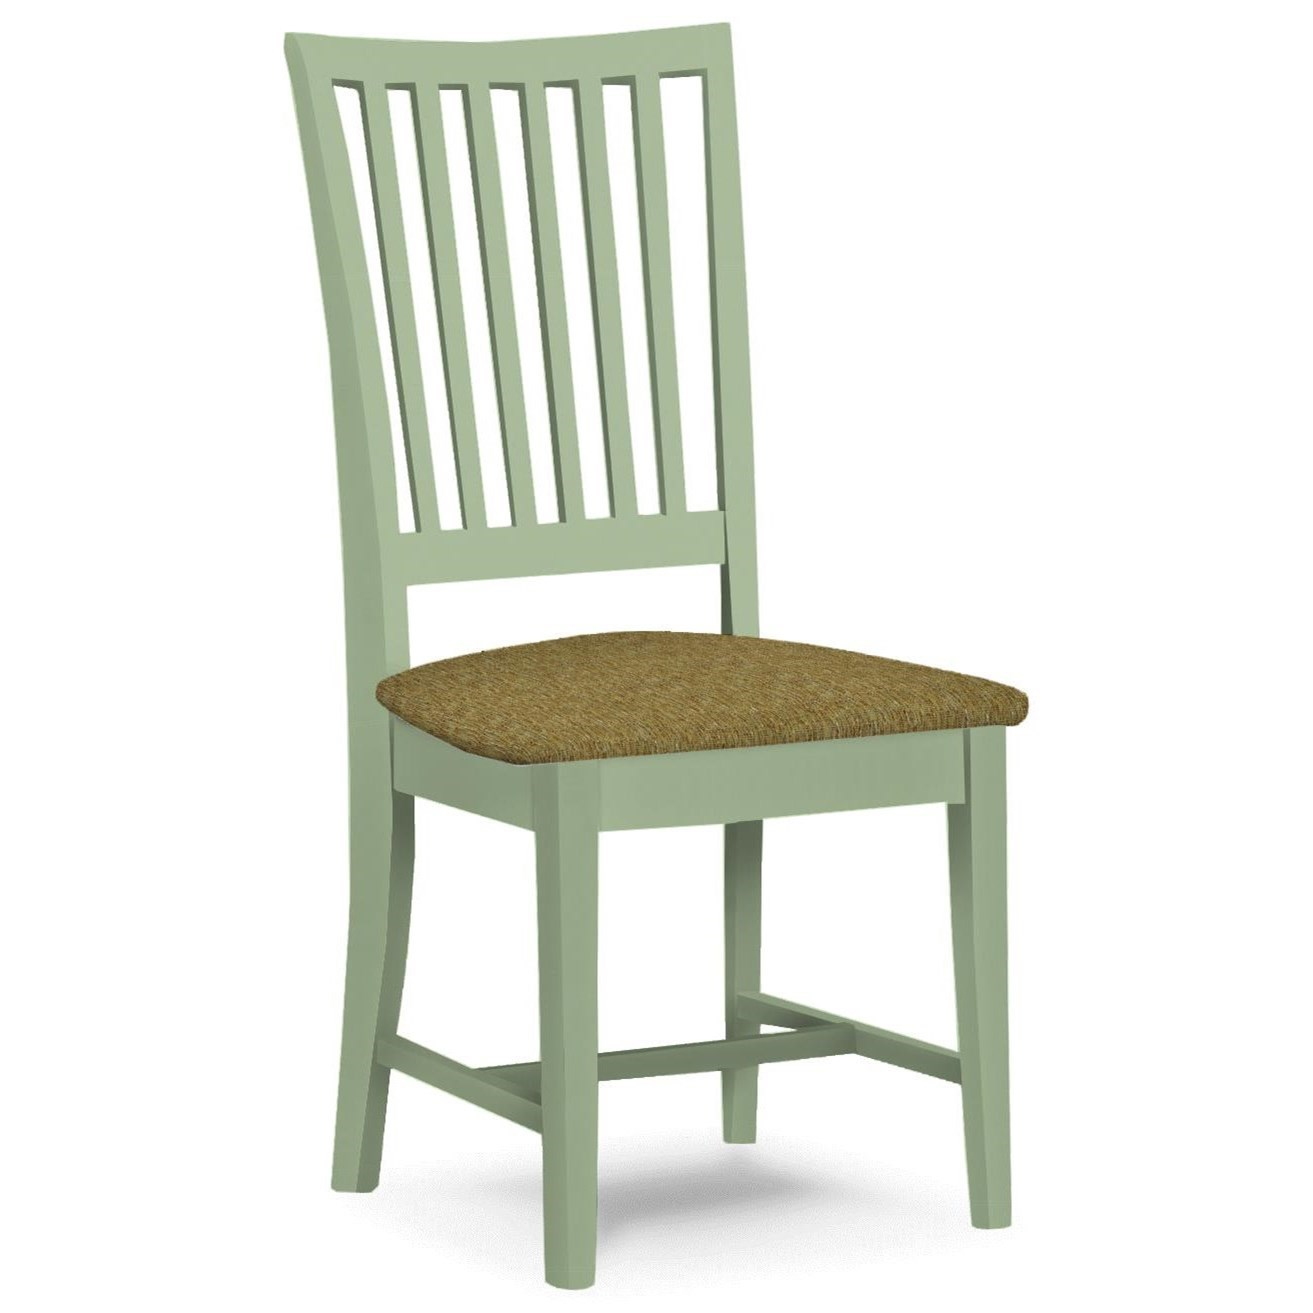 John Thomas SELECT Dining Mission Side Chair - Item Number: 265B-F14-AG05